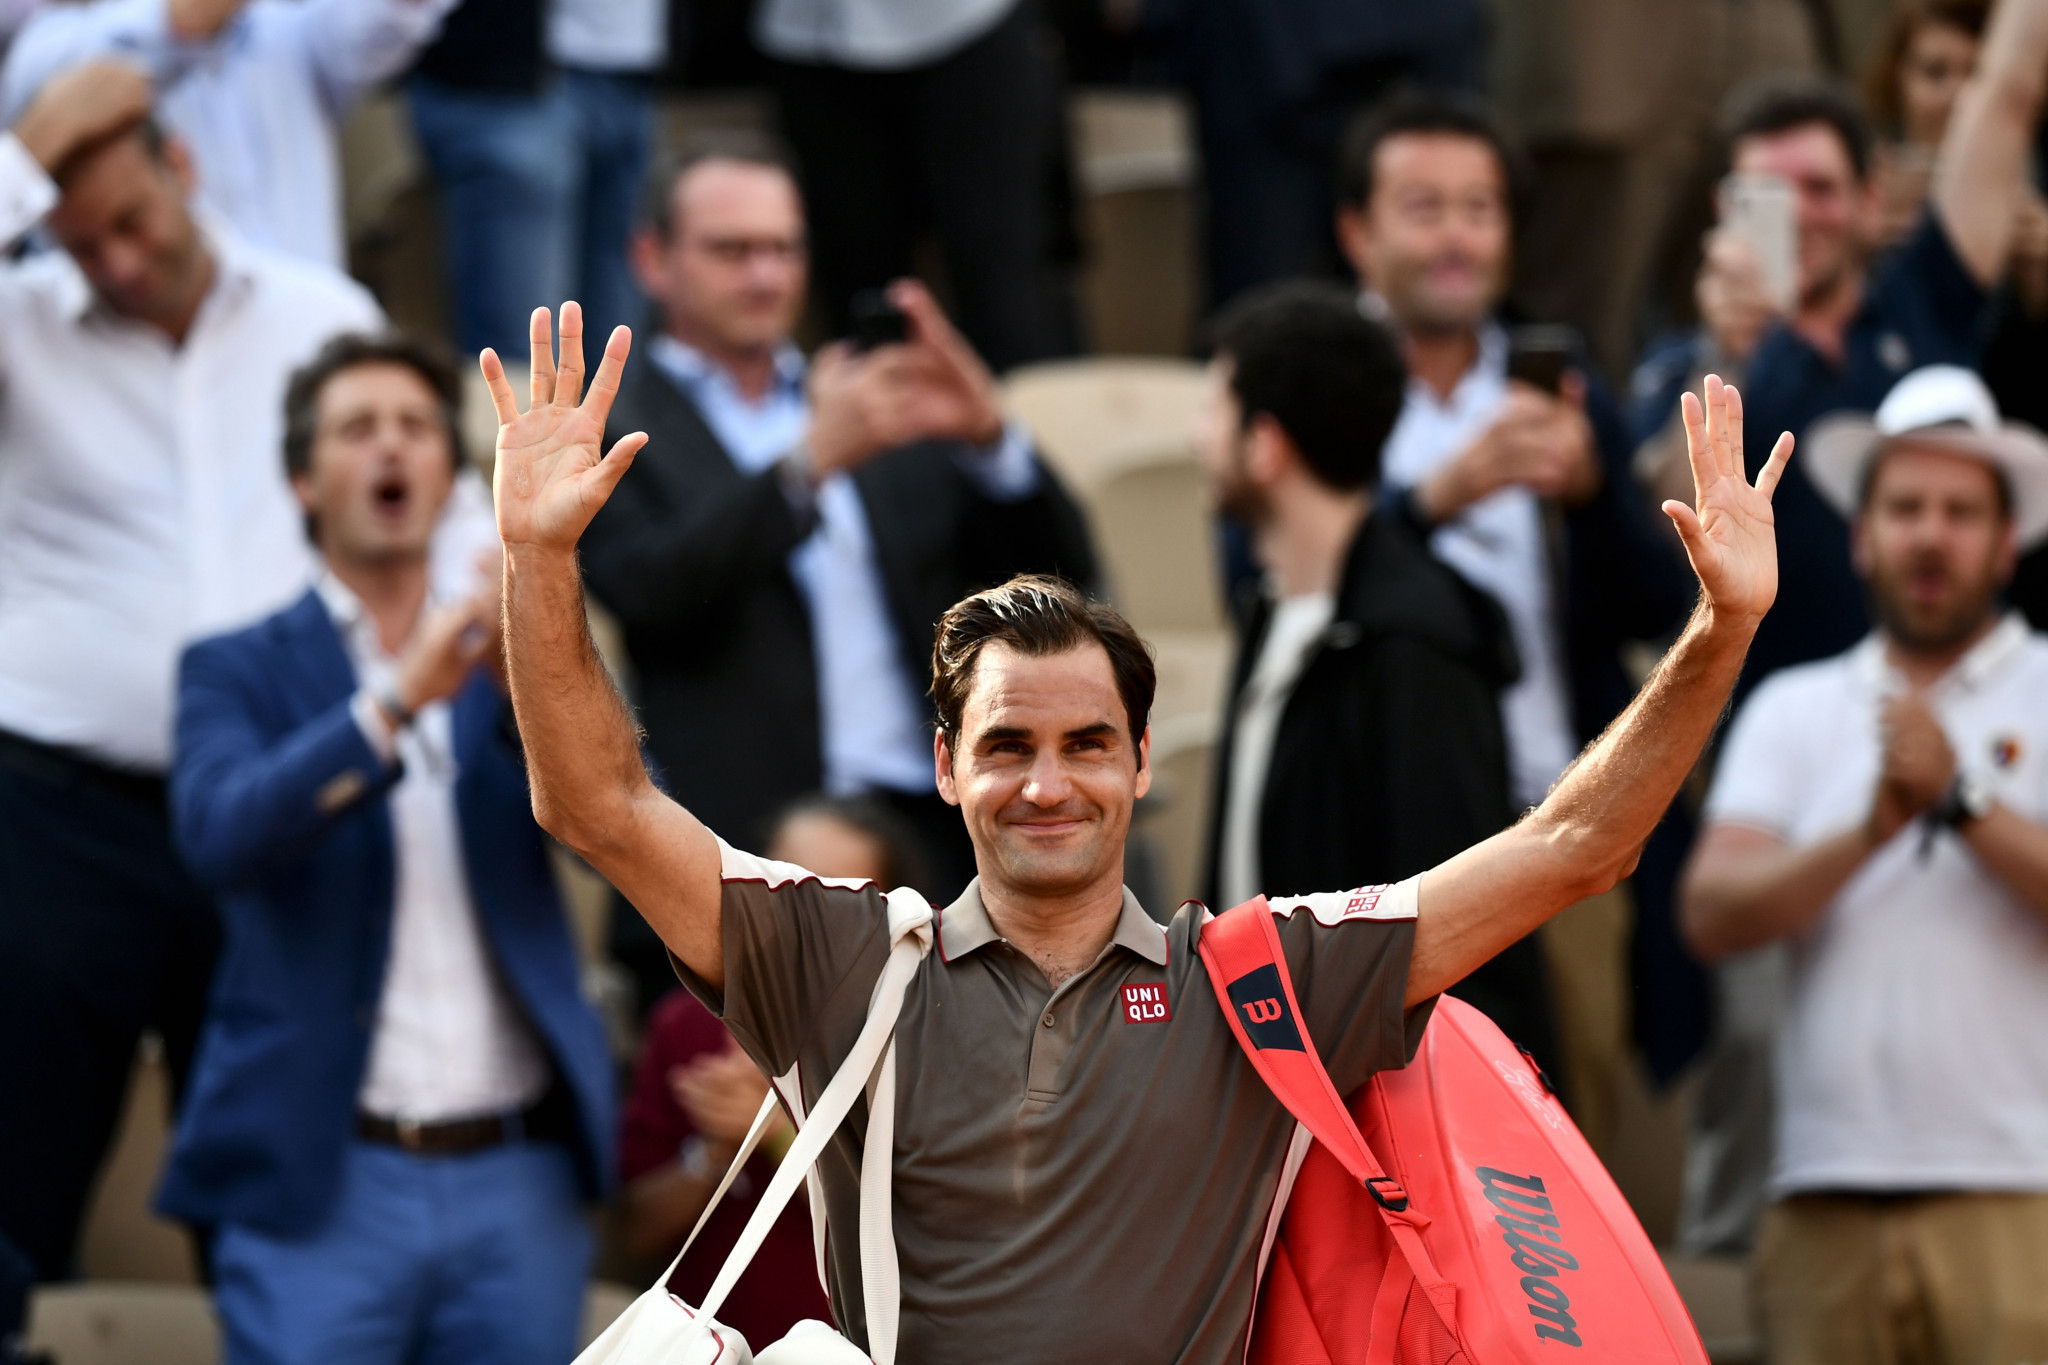 Switzerland's Roger Federer fought his way through to the French Open semi-finals after a three-hour four-set battle with countryman Stanislas Wawrinka ©Getty Images